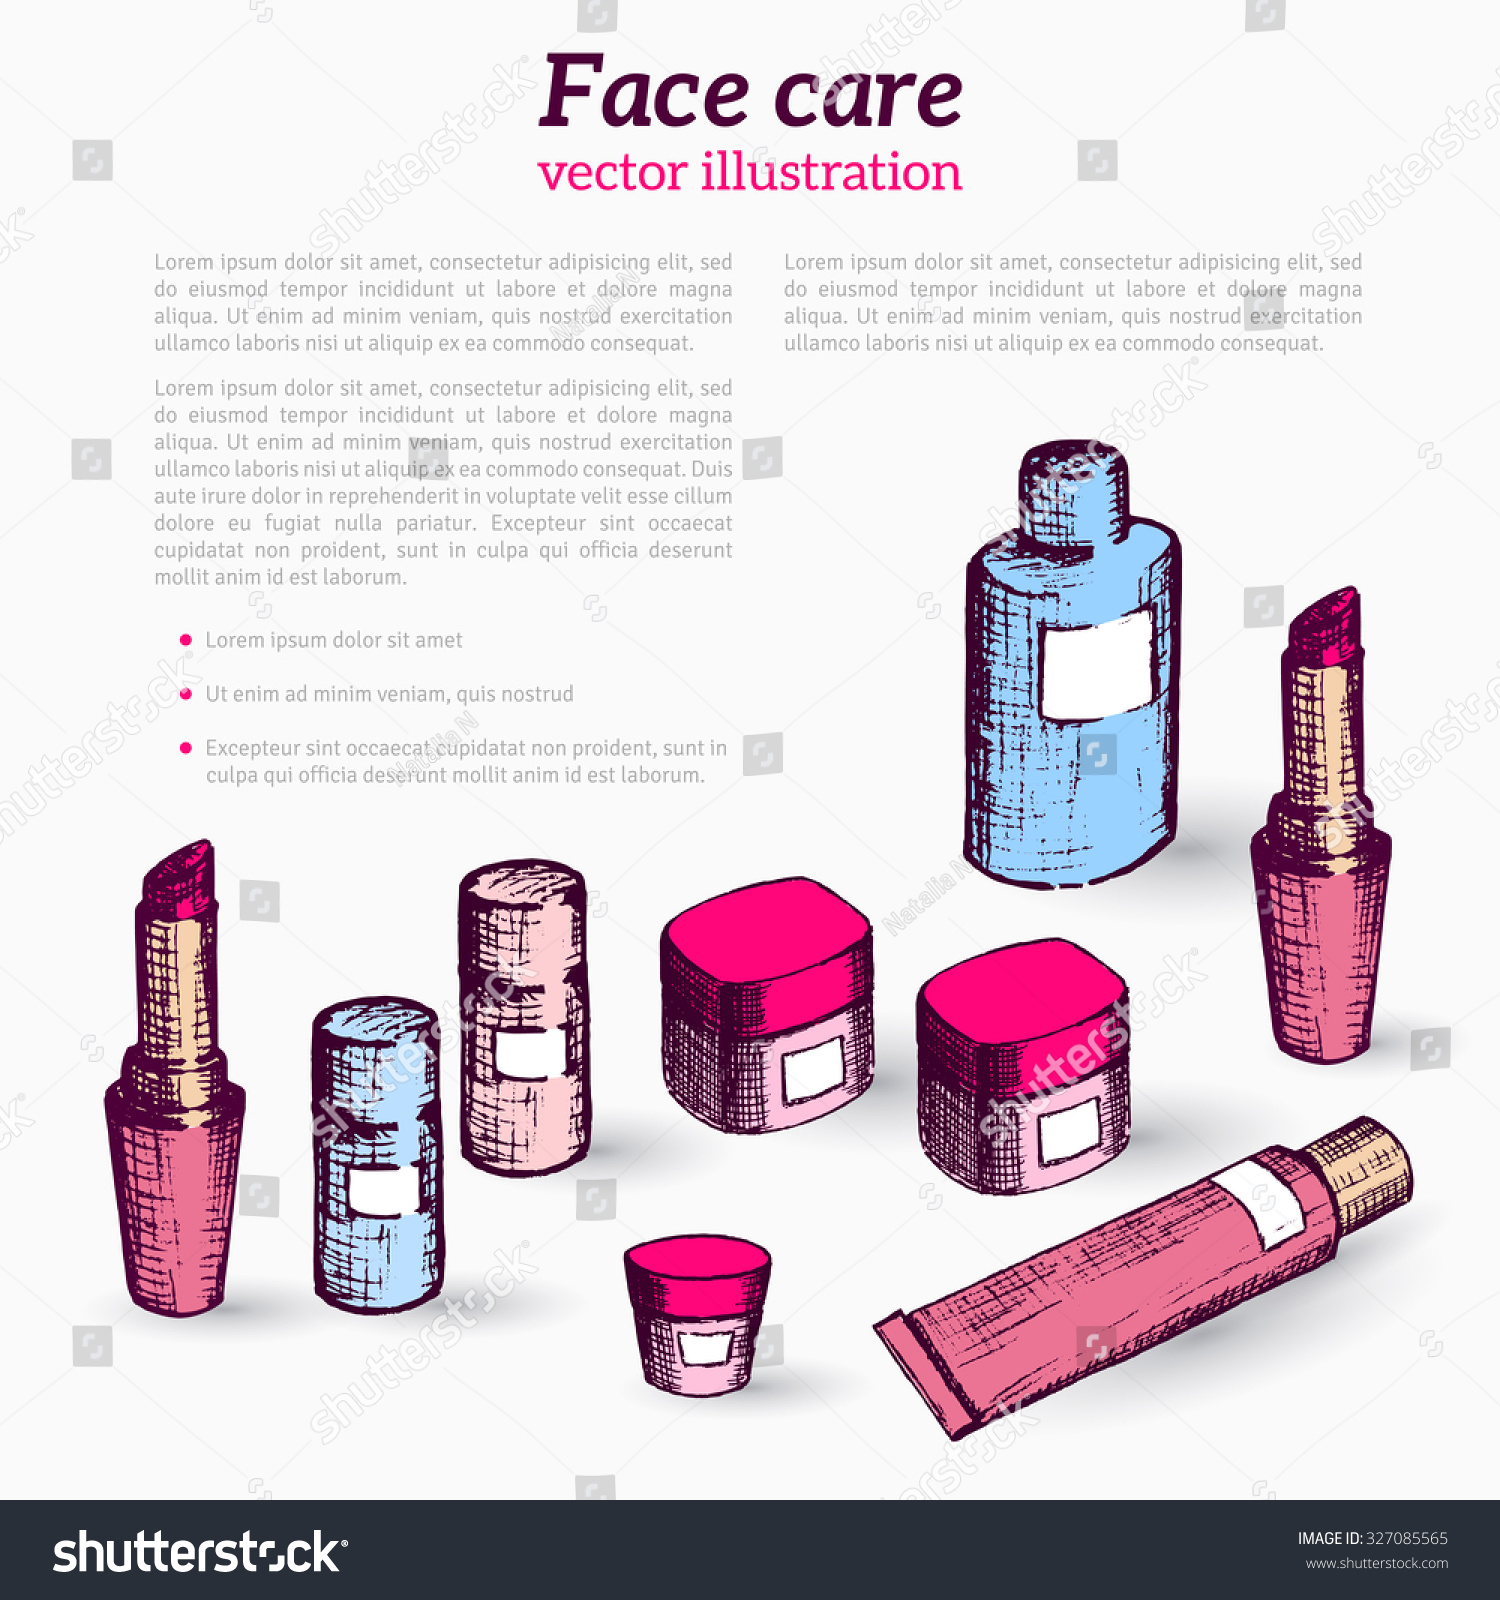 hand drawn flyer template makeup products stock vector  hand drawn flyer template make up products doodle cosmetics background for beauty shop